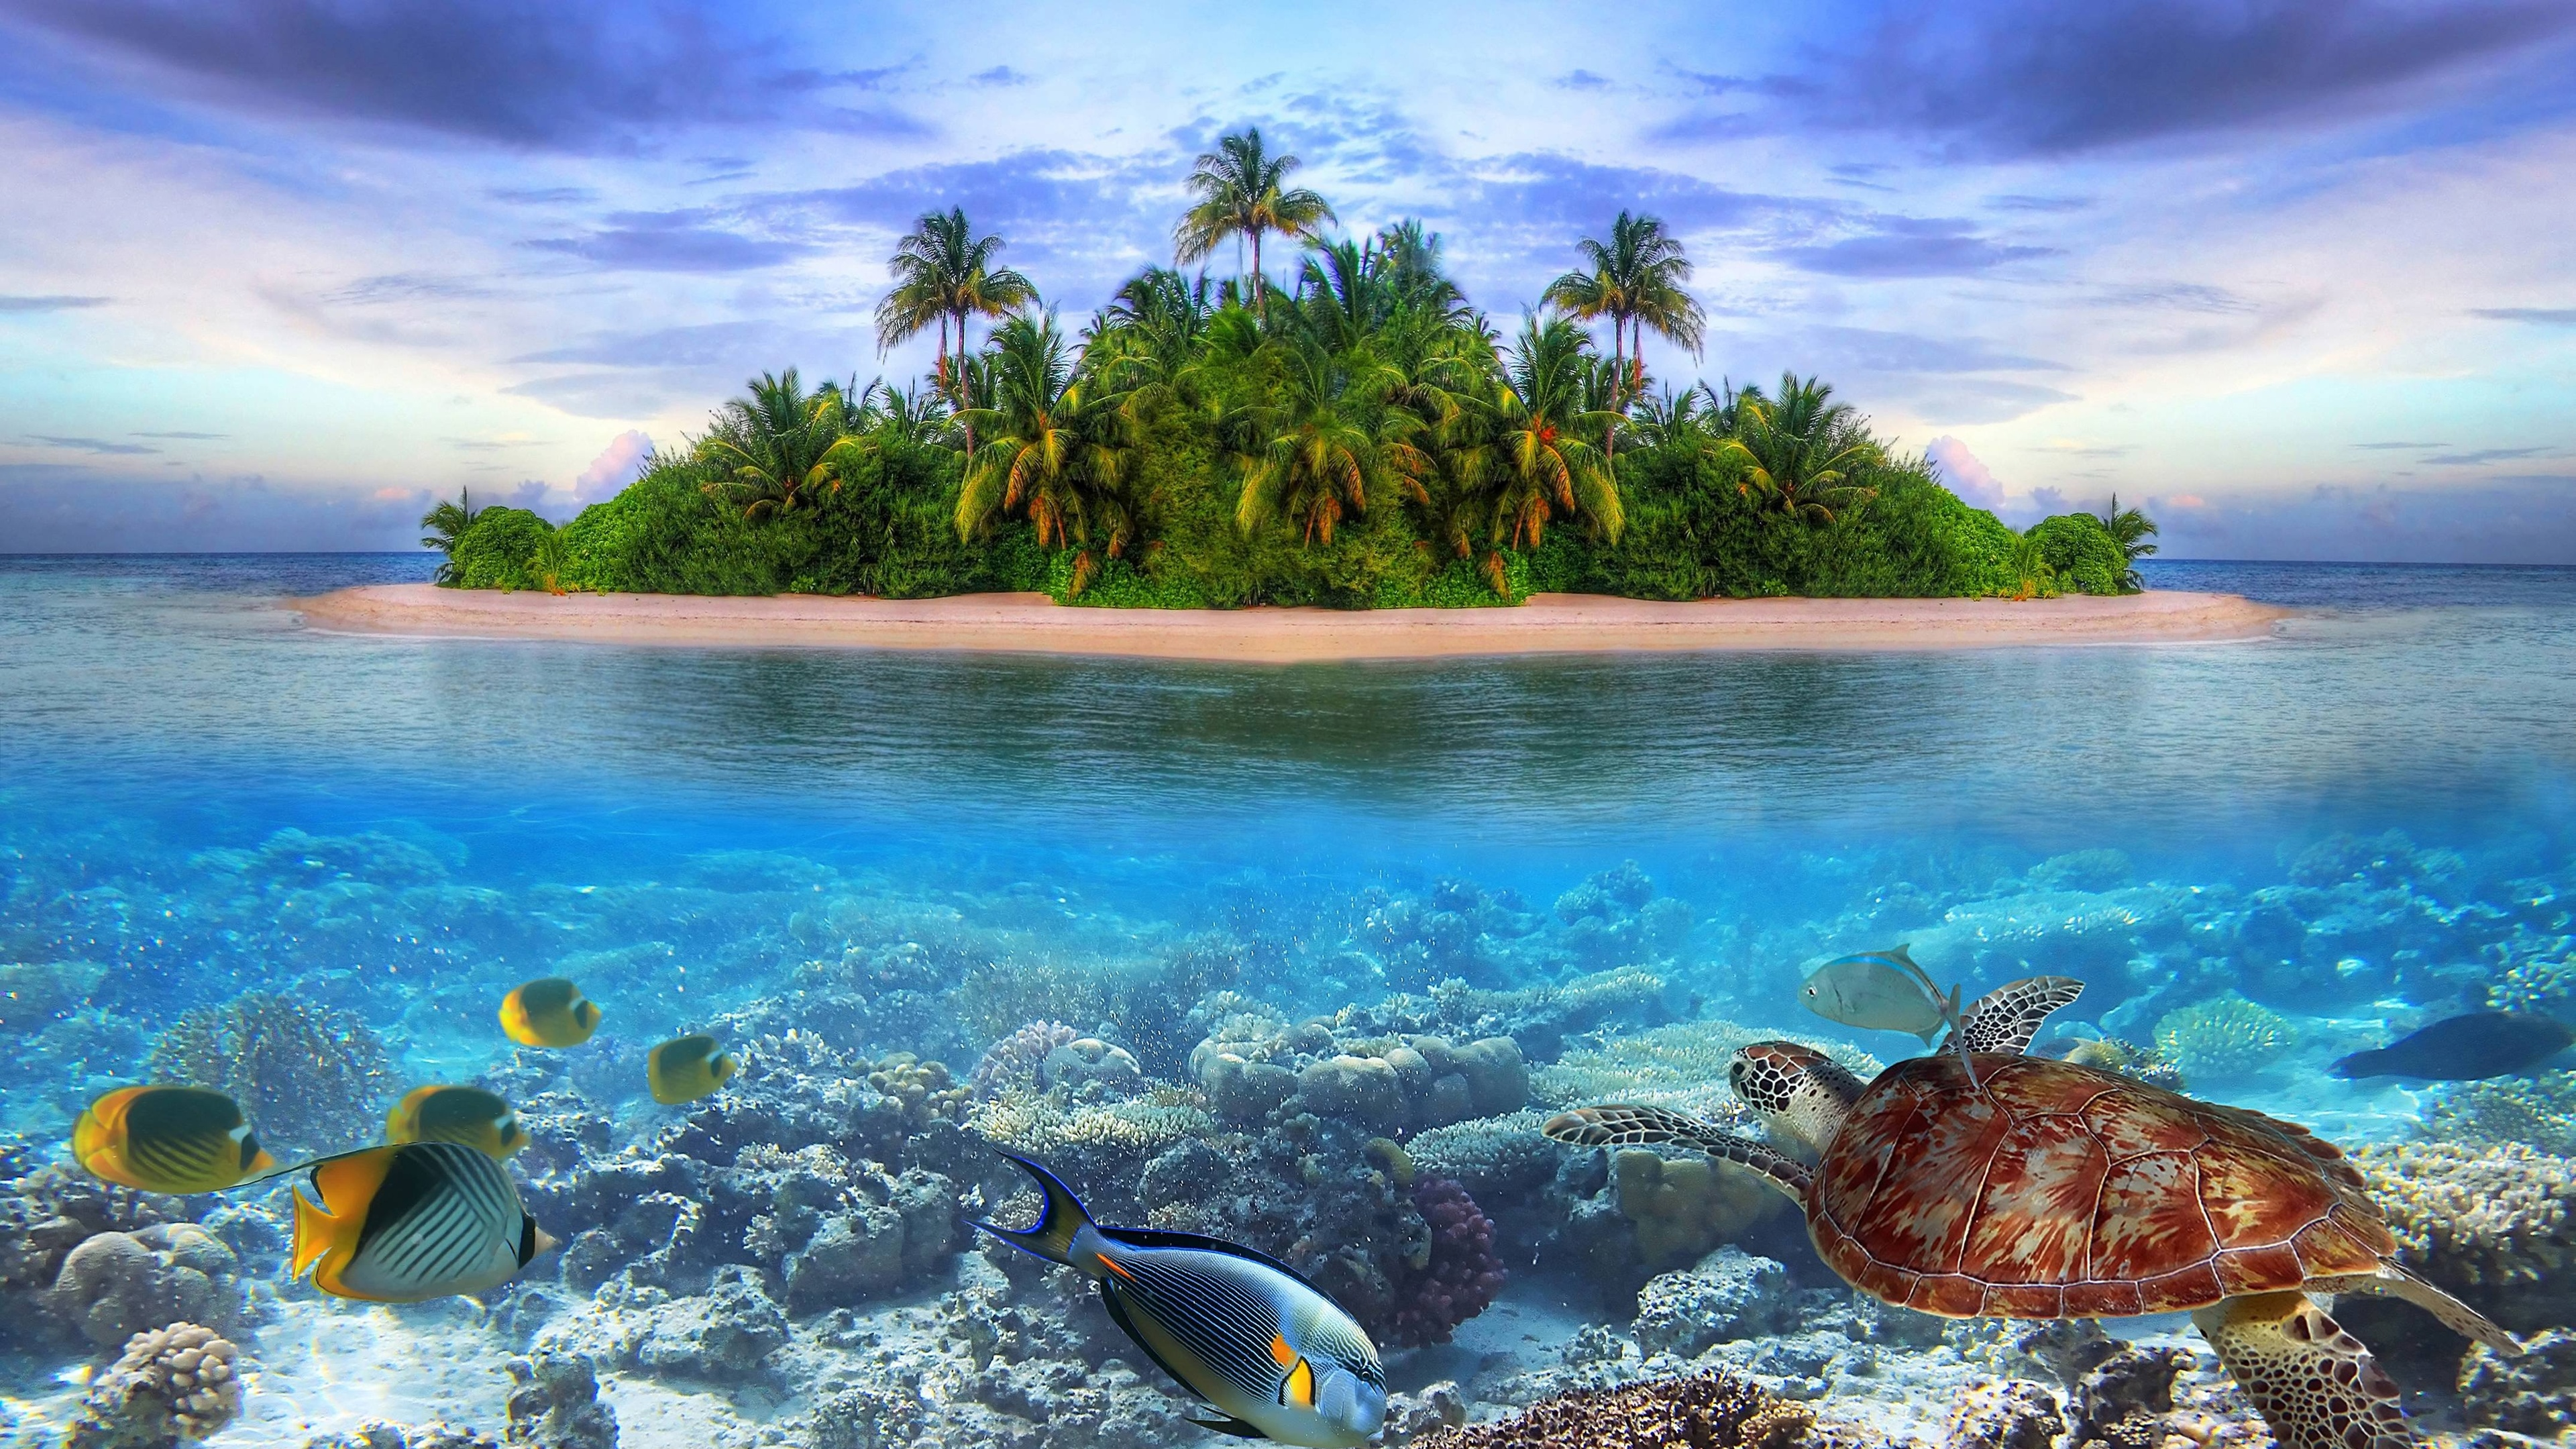 Caribbean Island Wallpapers, Top 44 Caribbean Island Backgrounds ...